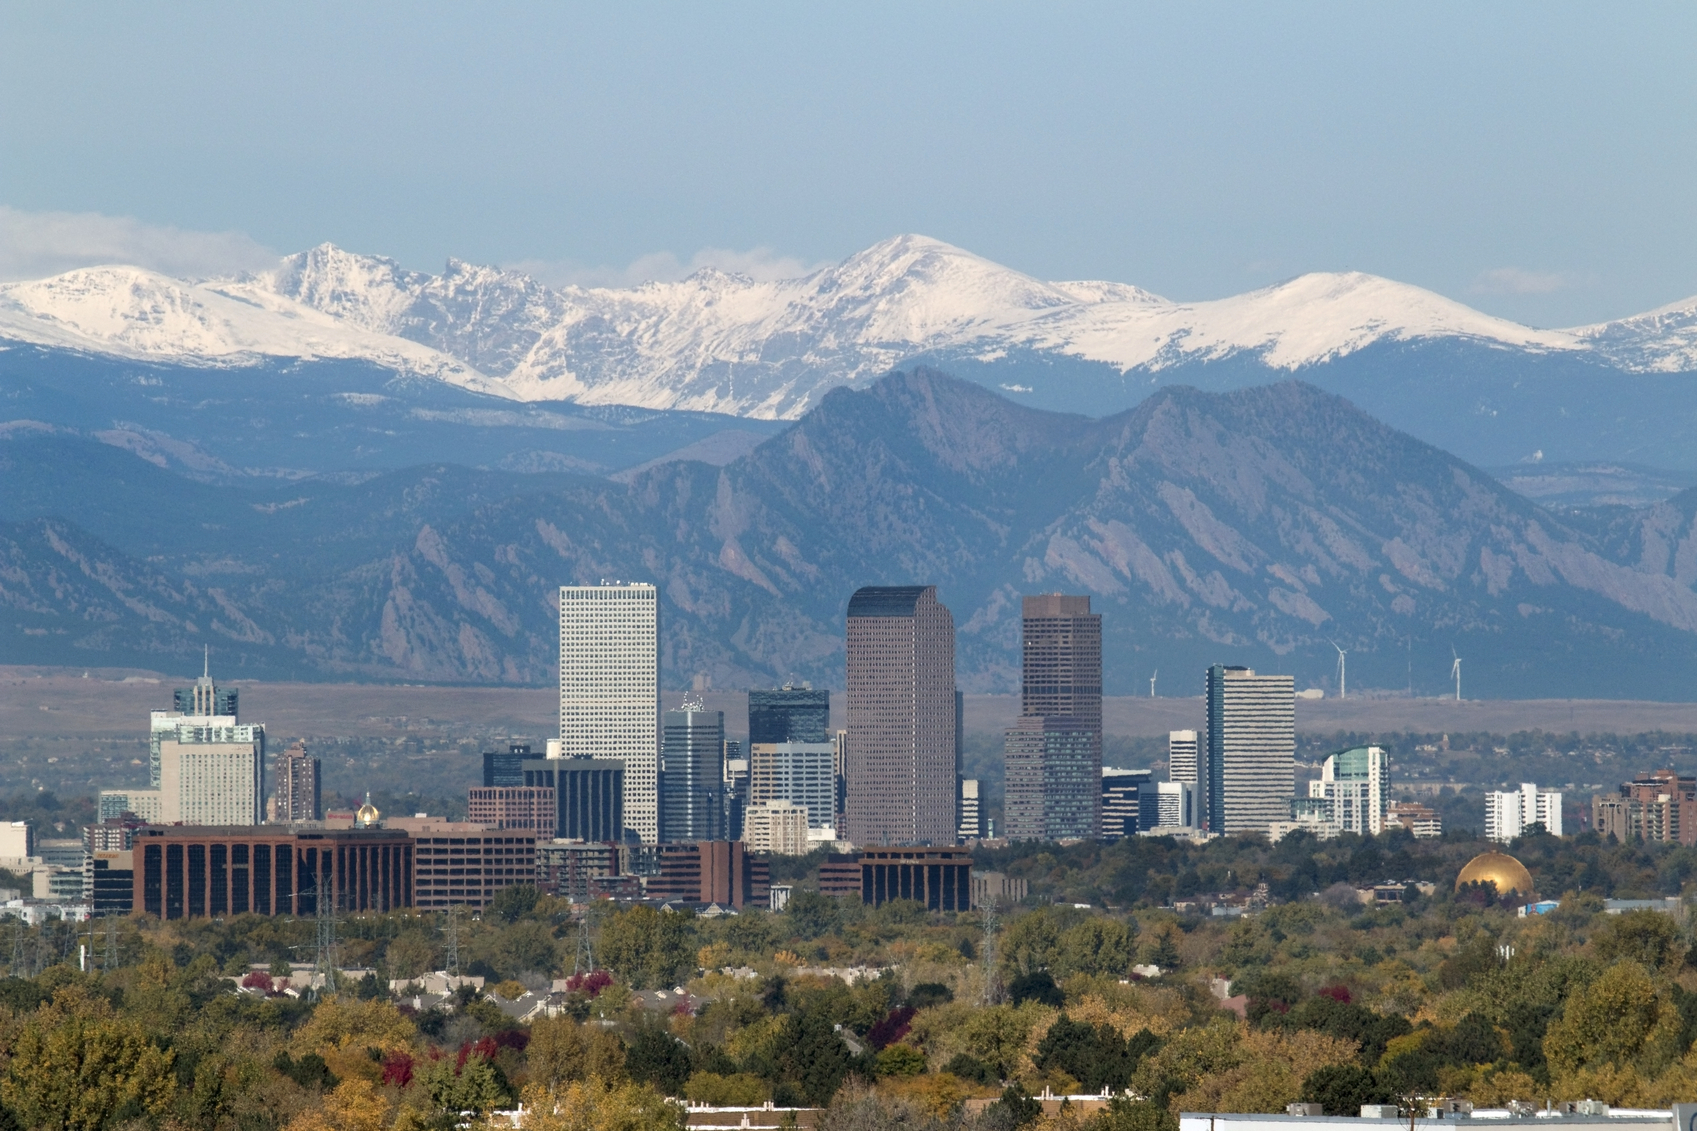 Snowy Indian Peaks and Downtown Denver Colorado skyscrapers